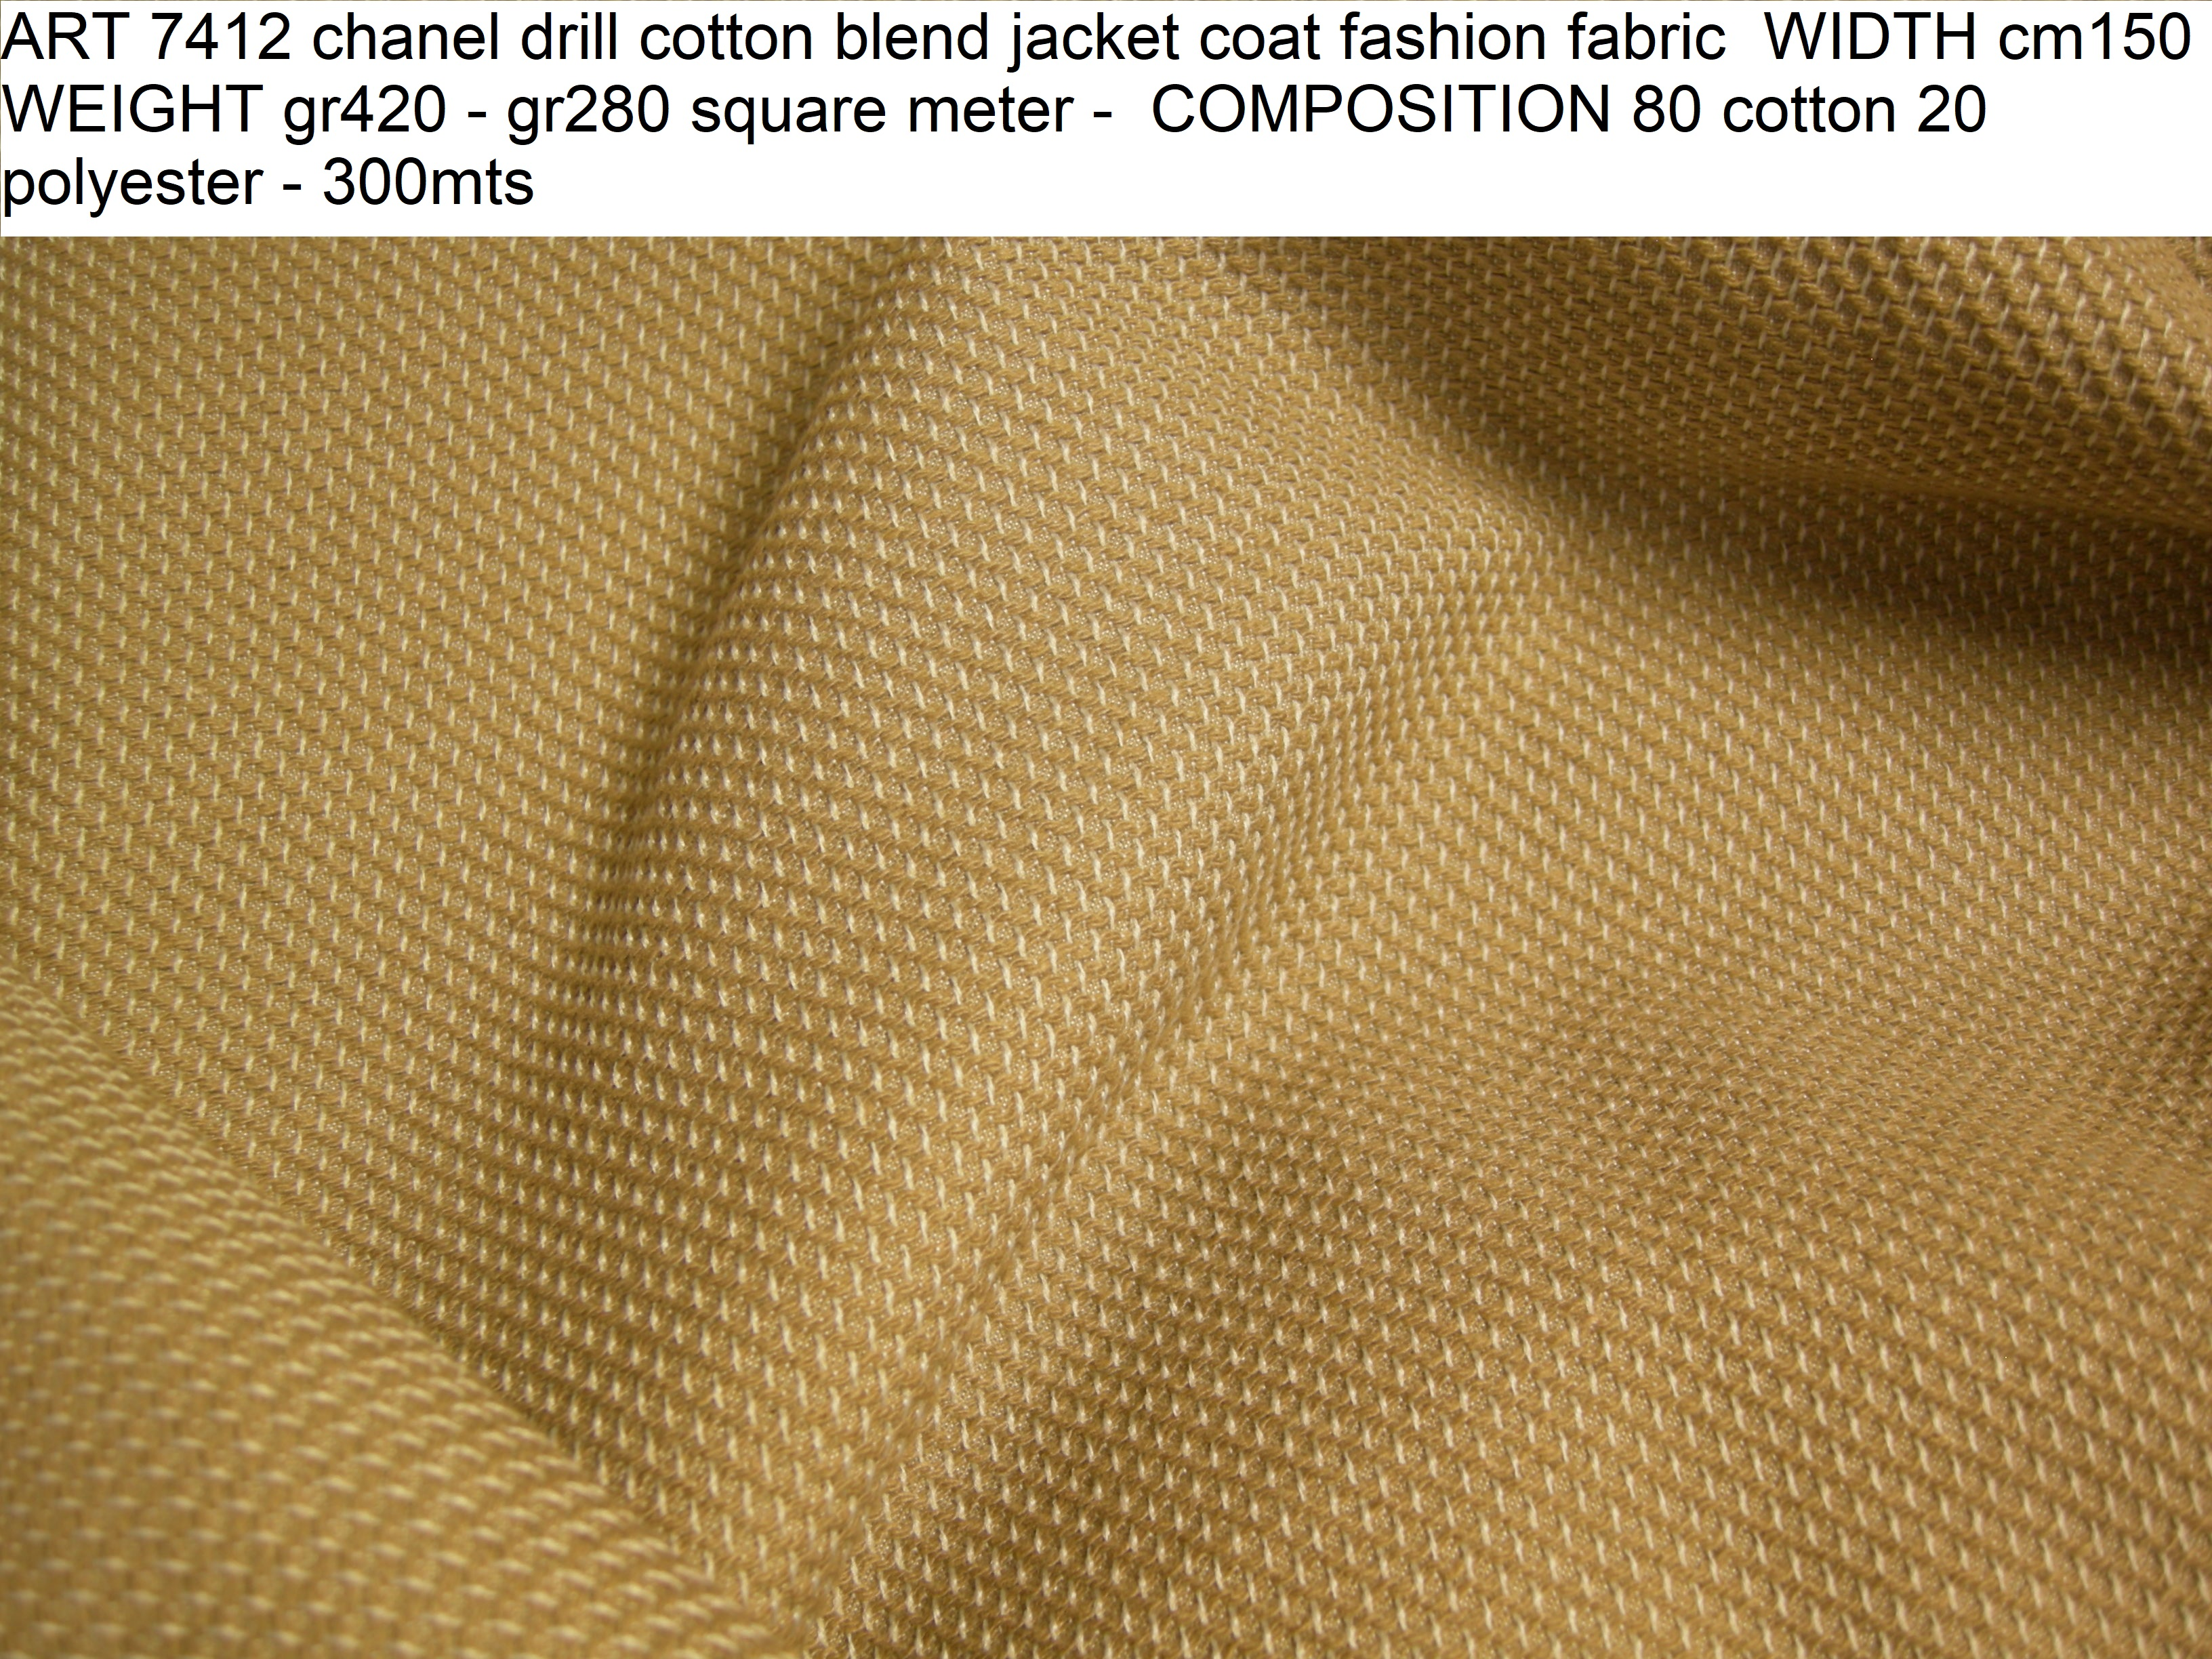 ART 7412 chanel drill cotton blend jacket coat fashion fabric WIDTH cm150 WEIGHT gr420 - gr280 square meter - COMPOSITION 80 cotton 20 polyester - 300mts